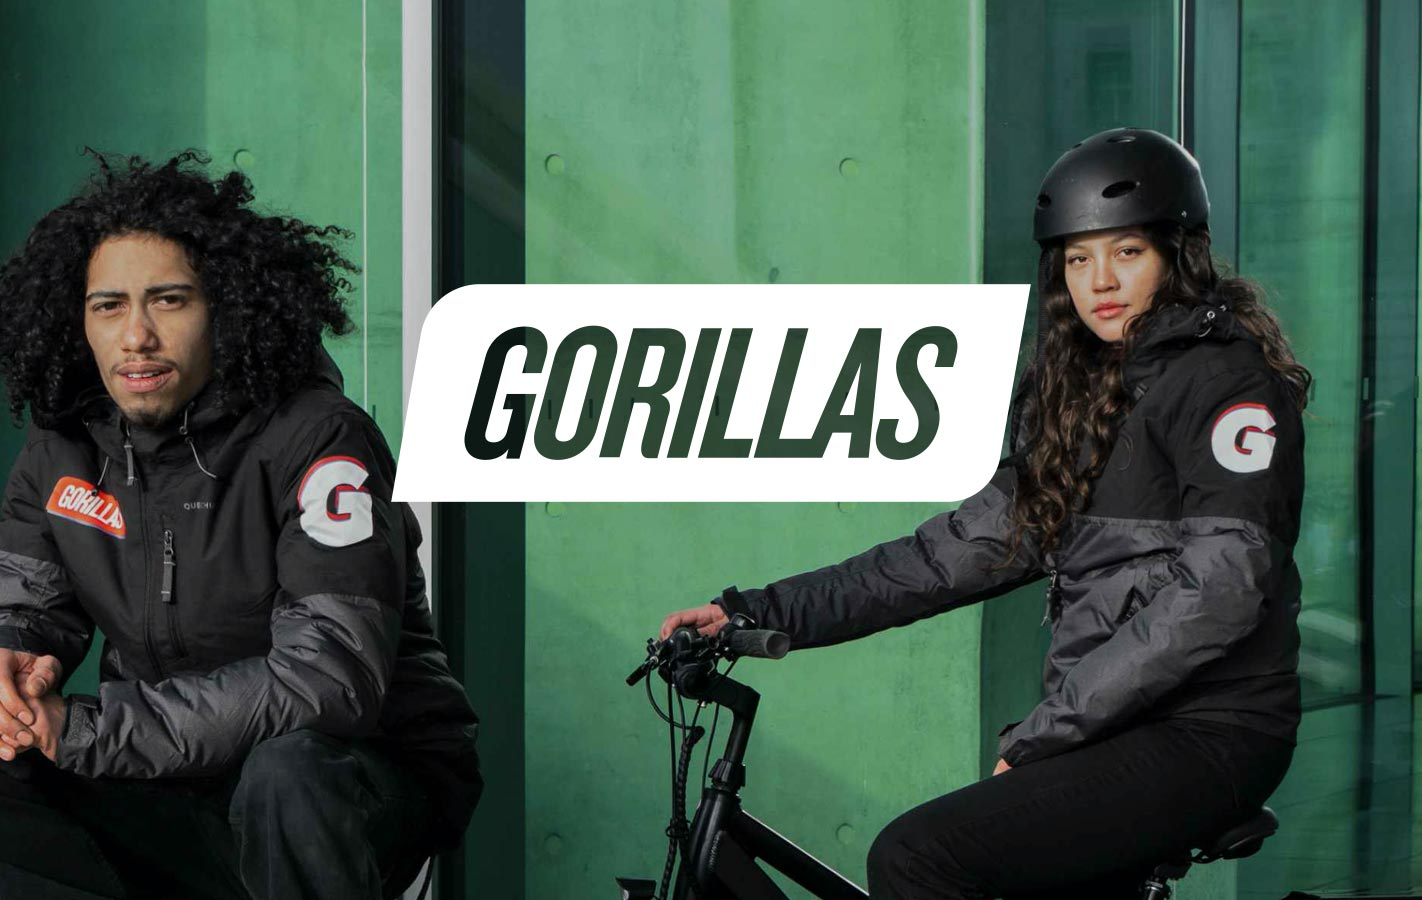 Gorilla raised $290M with a valuation over $1B